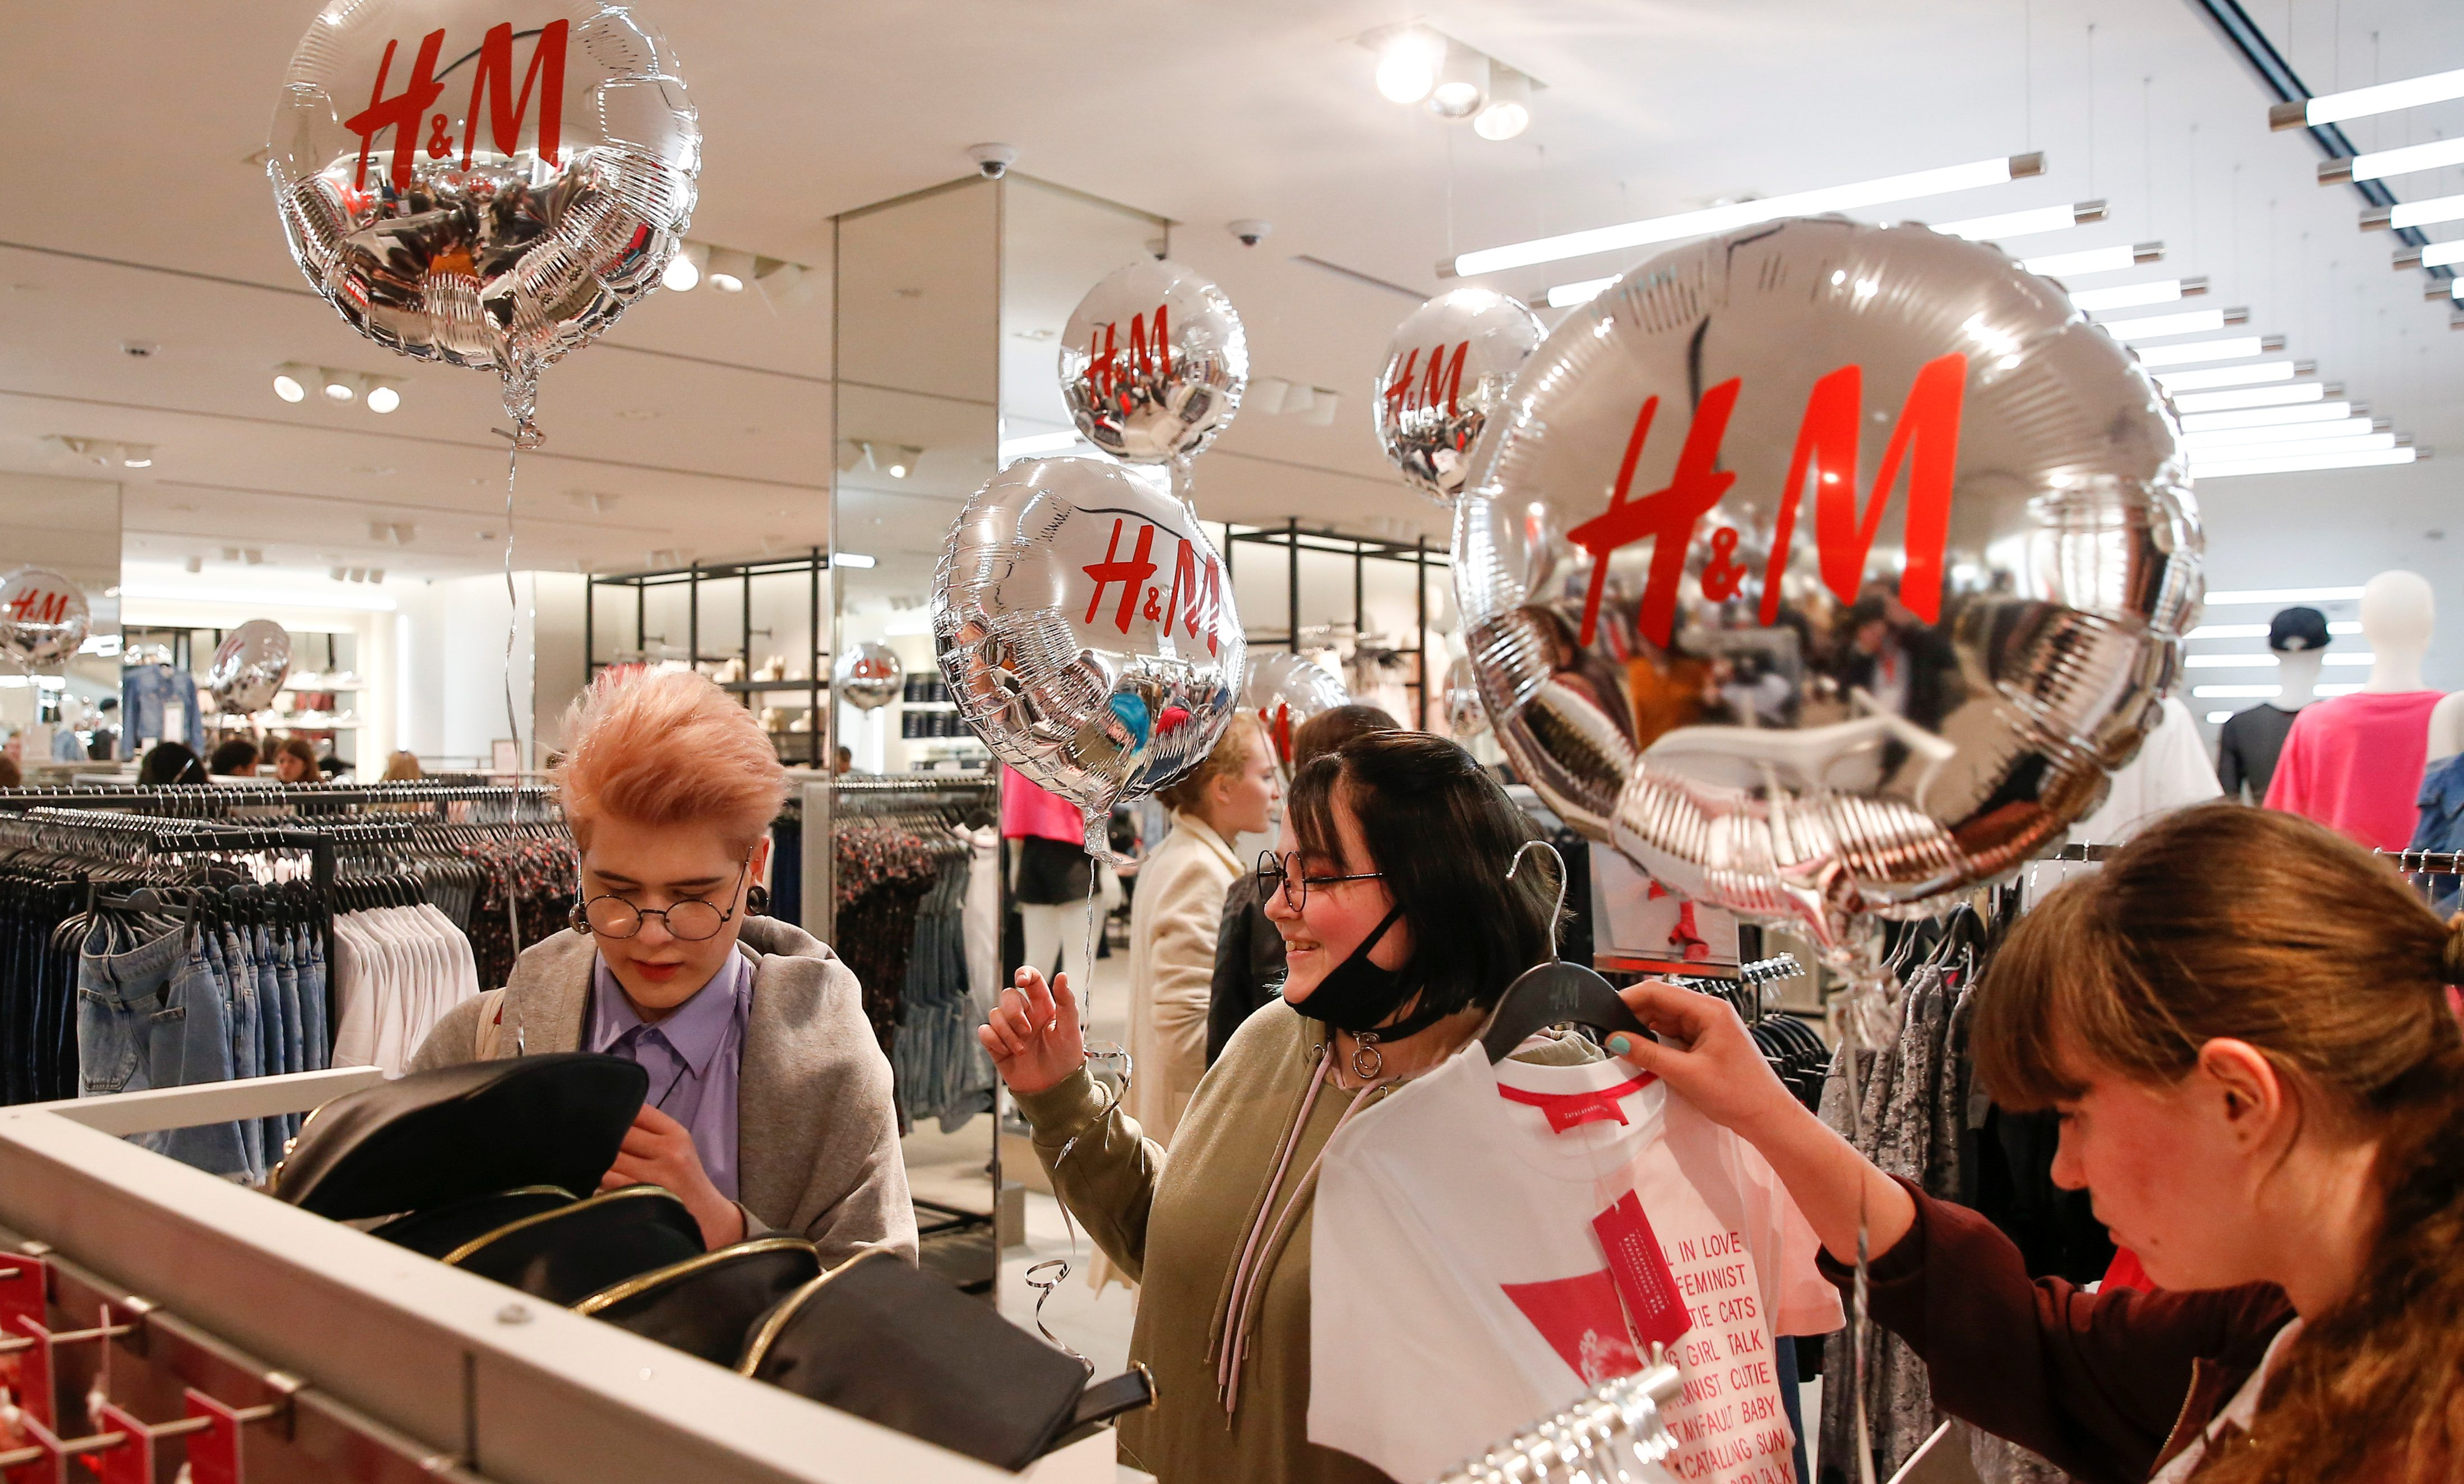 People Shop At The Swedish Fashion Retailer Hennes Mauritz Hm Store On Its